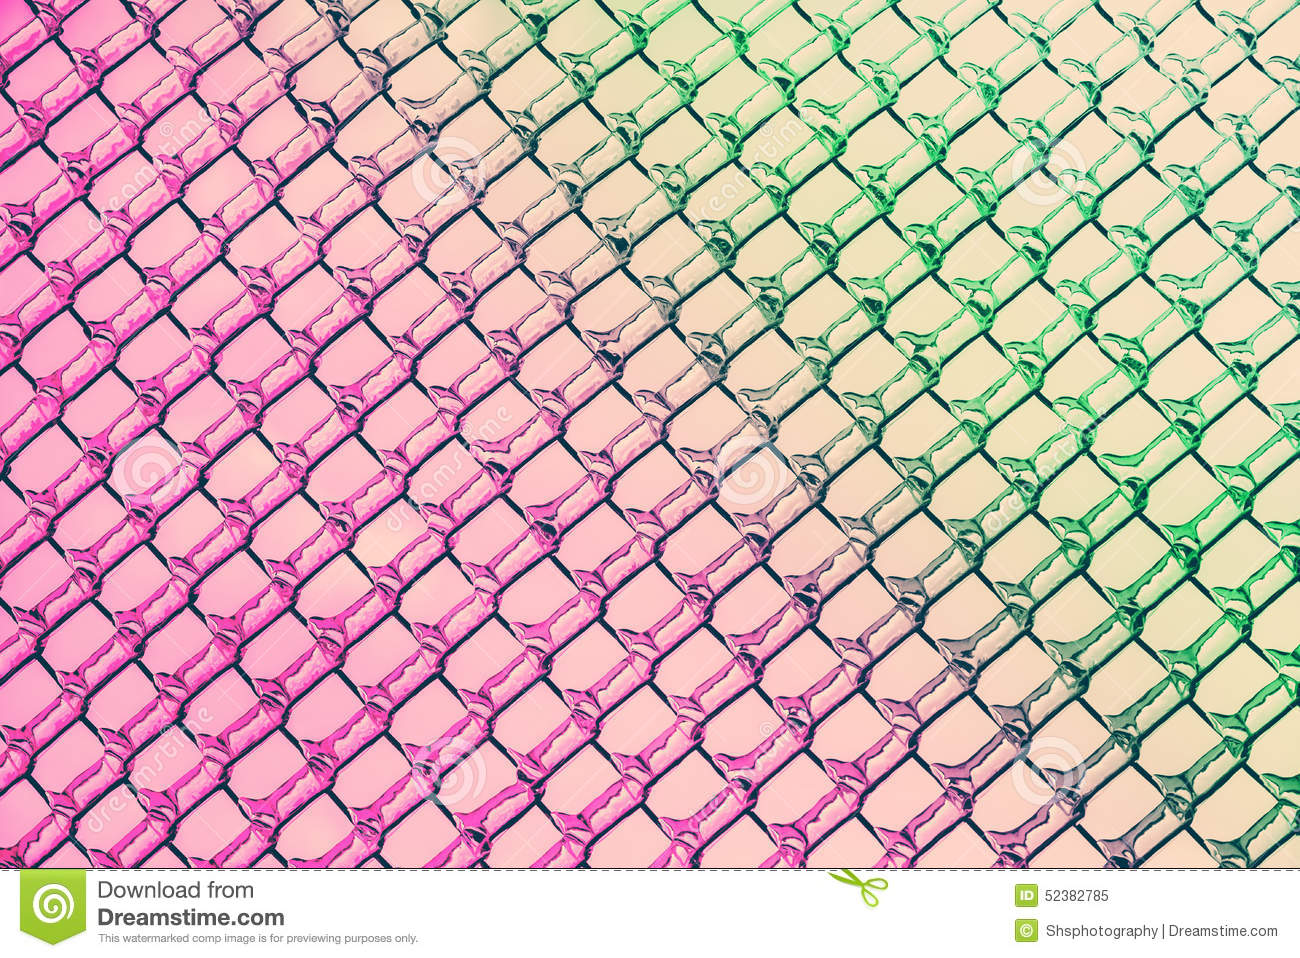 Pink To Green Colors In Ice Diamond Patterns Stock Image Image Of Cold Green 52382785